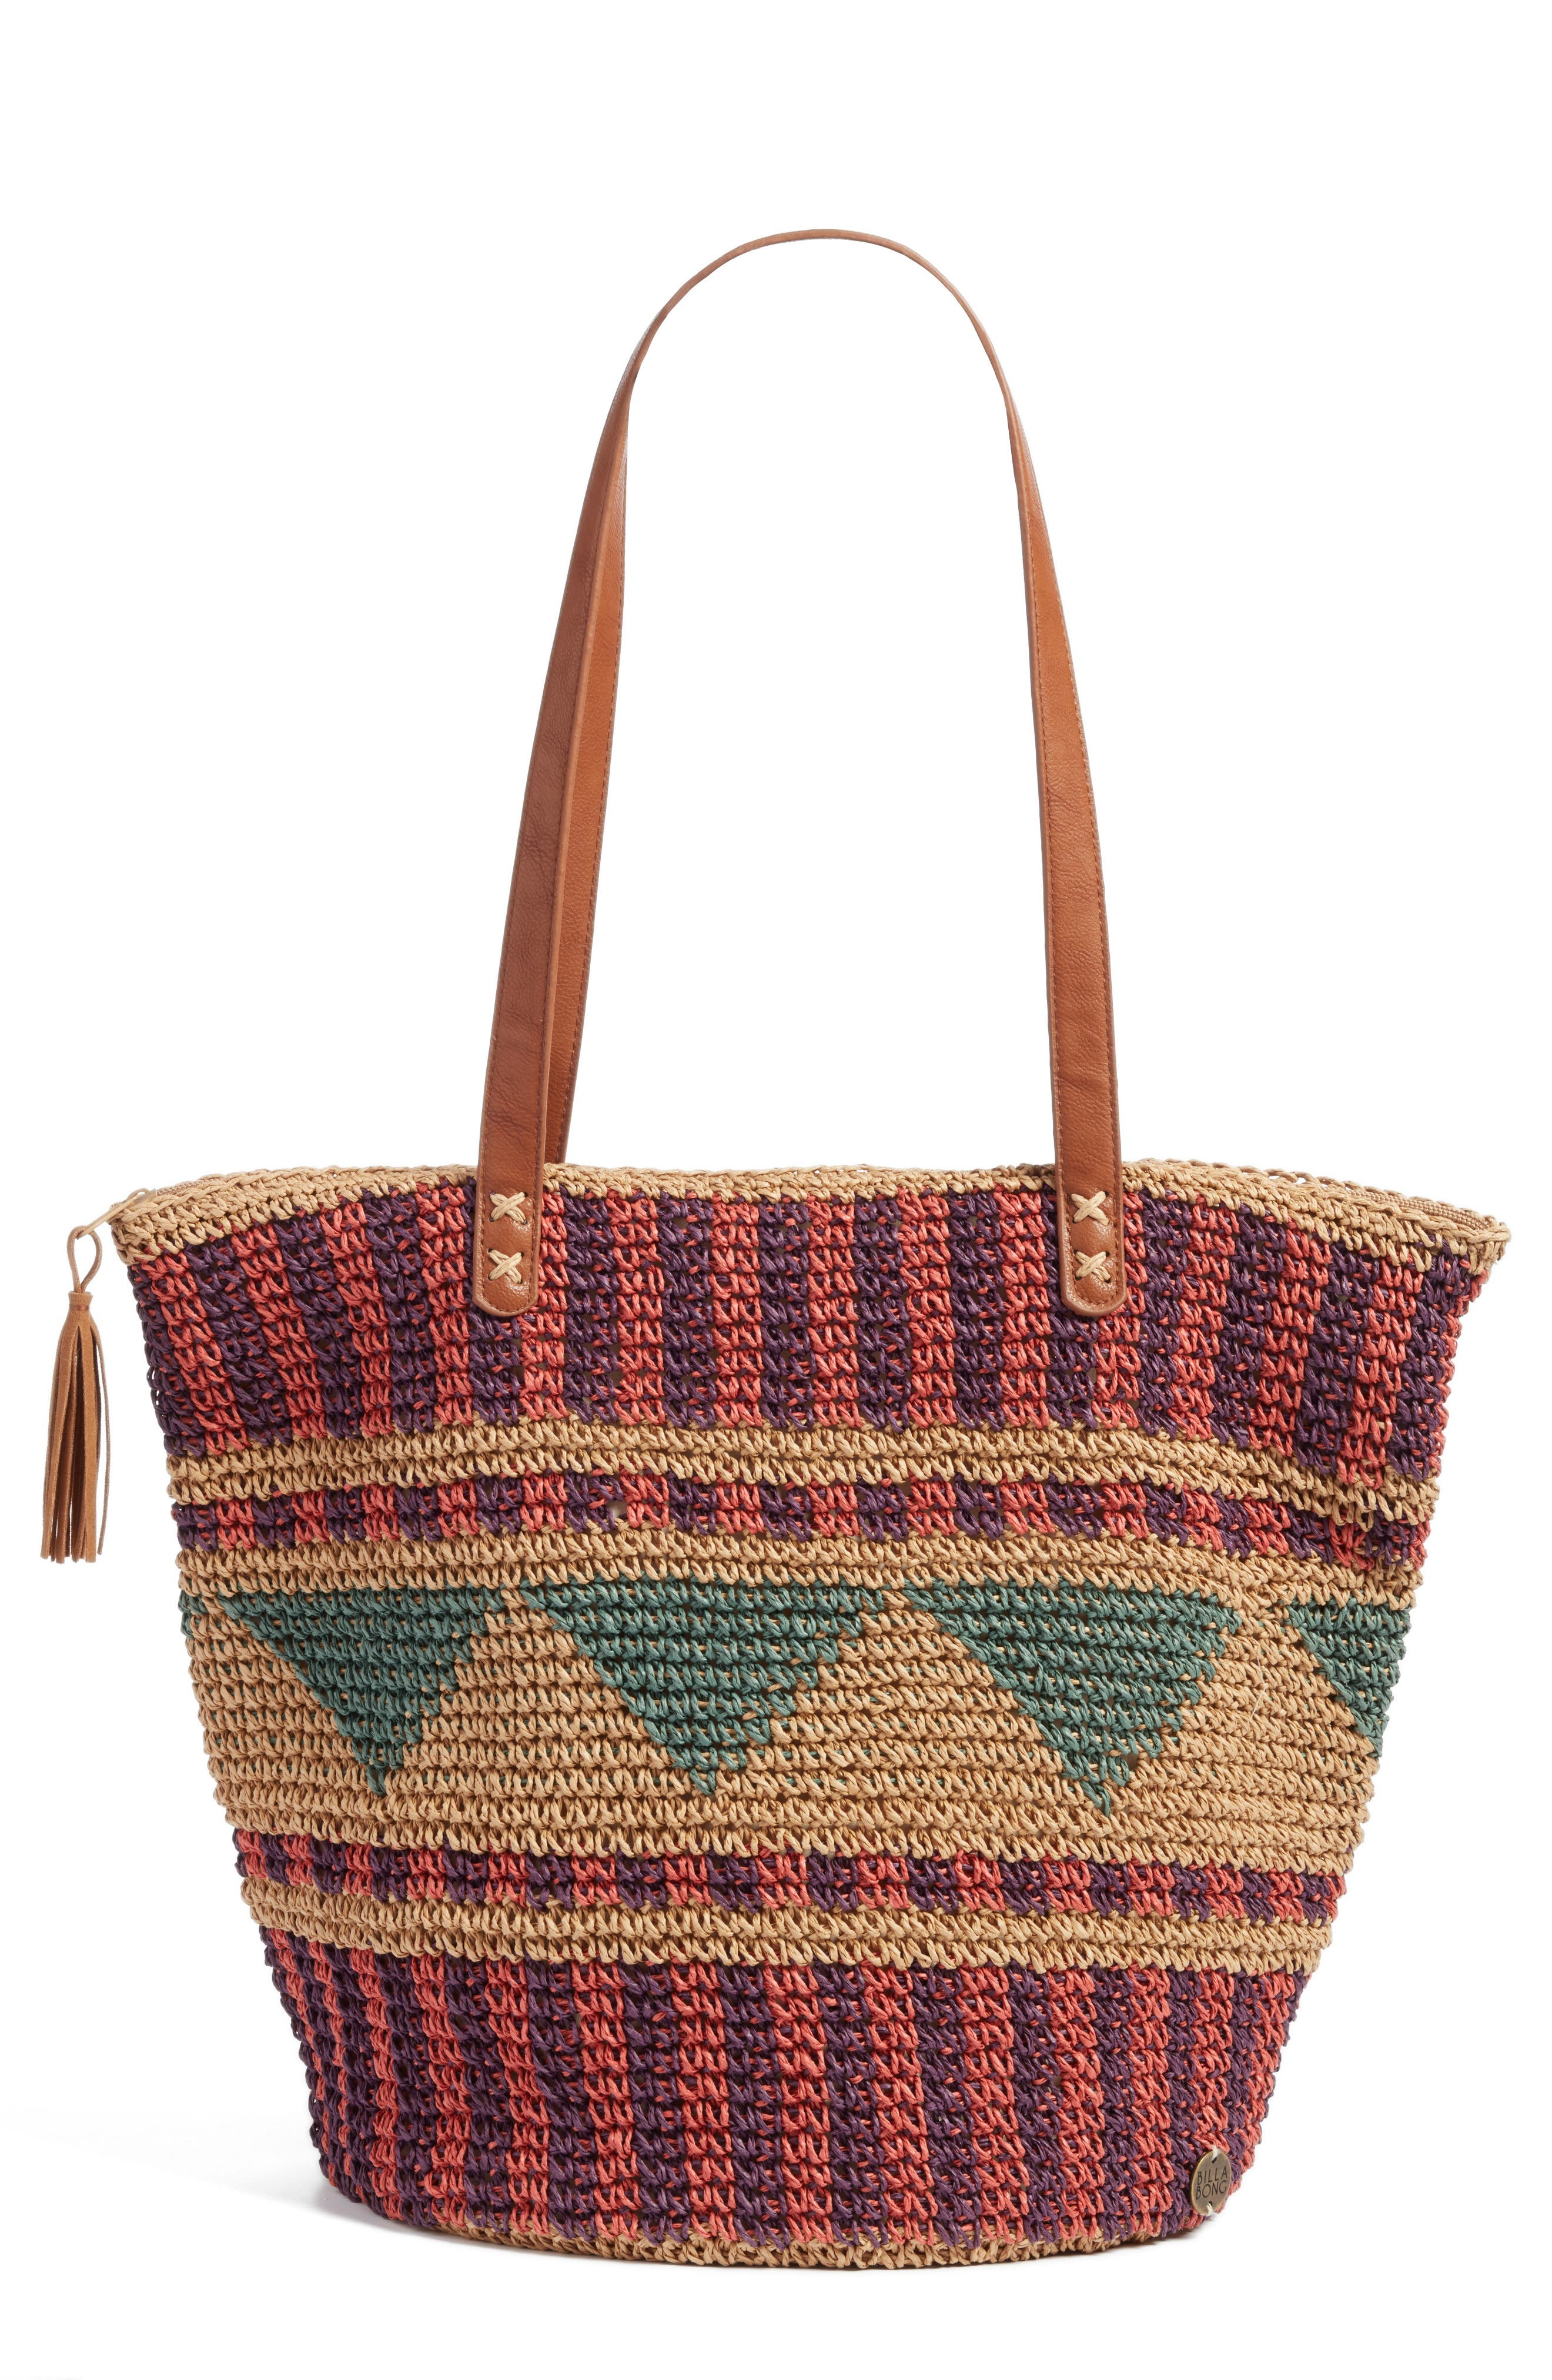 East of Dover Print Straw Tote,                             Main thumbnail 1, color,                             600